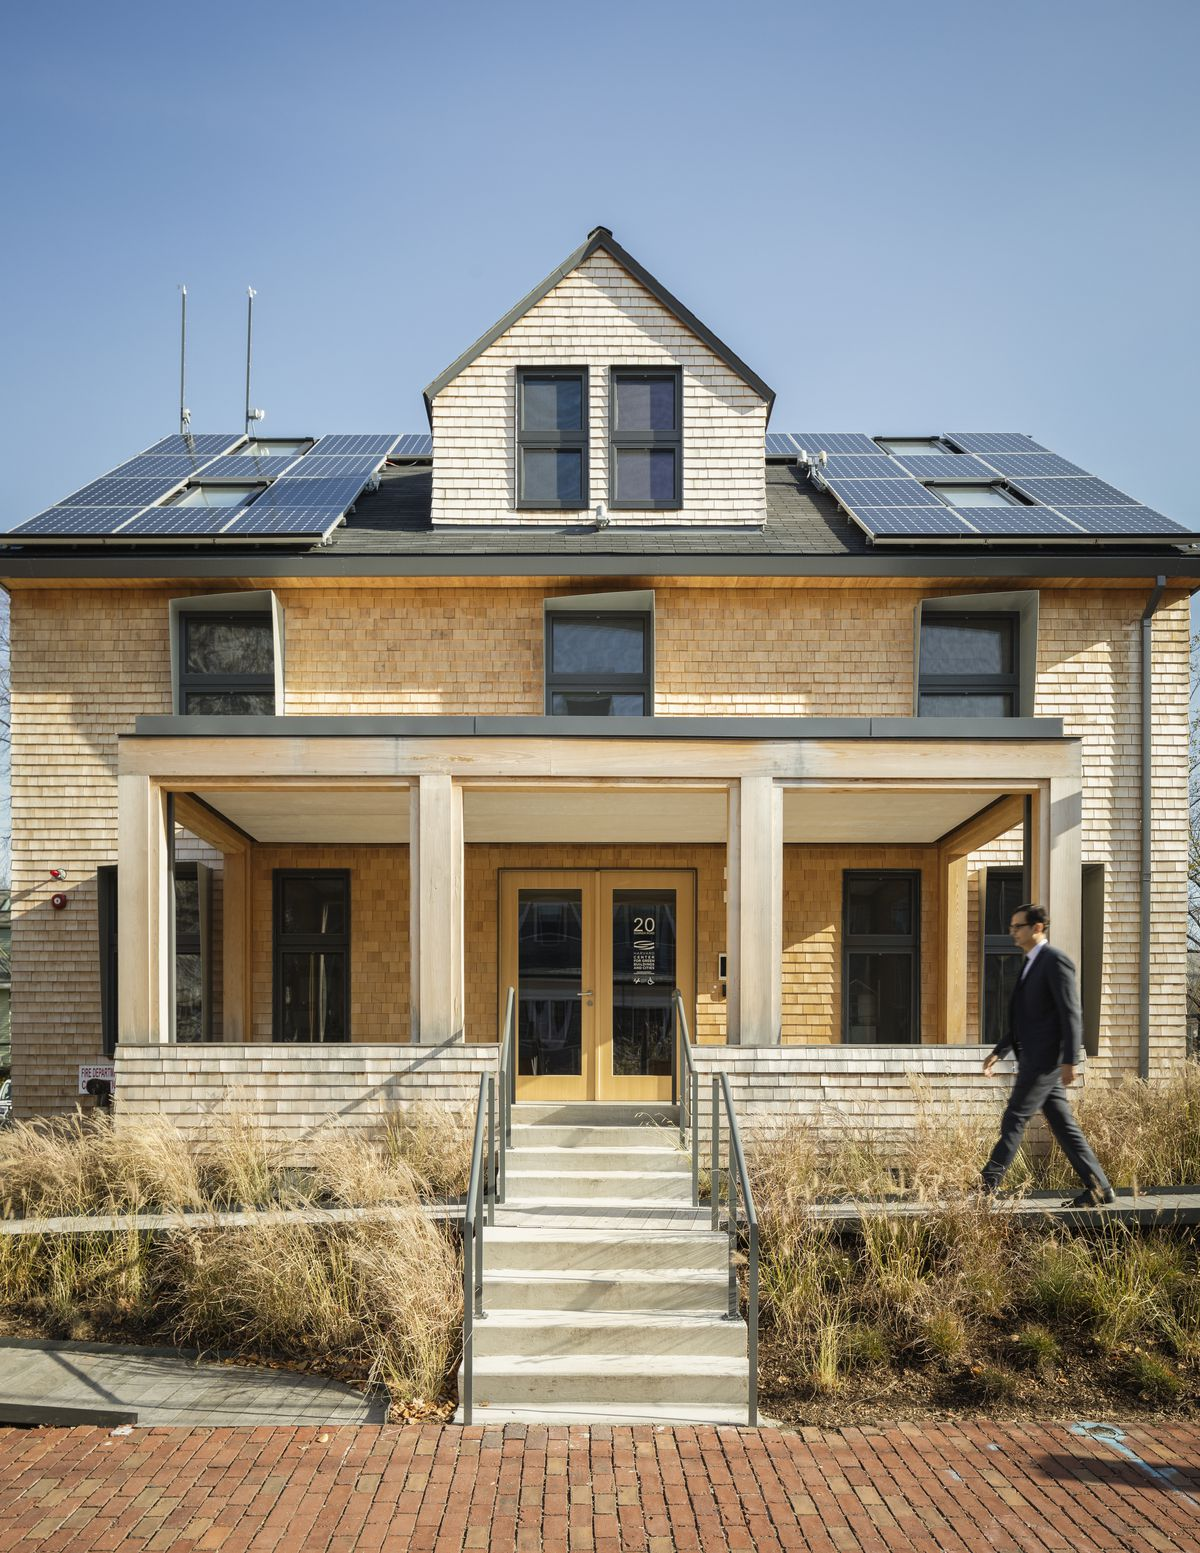 The front facade of HouseZero, a new demonstration project and office built by the Center for Green Building and Cities (CGBC) at Harvard University.